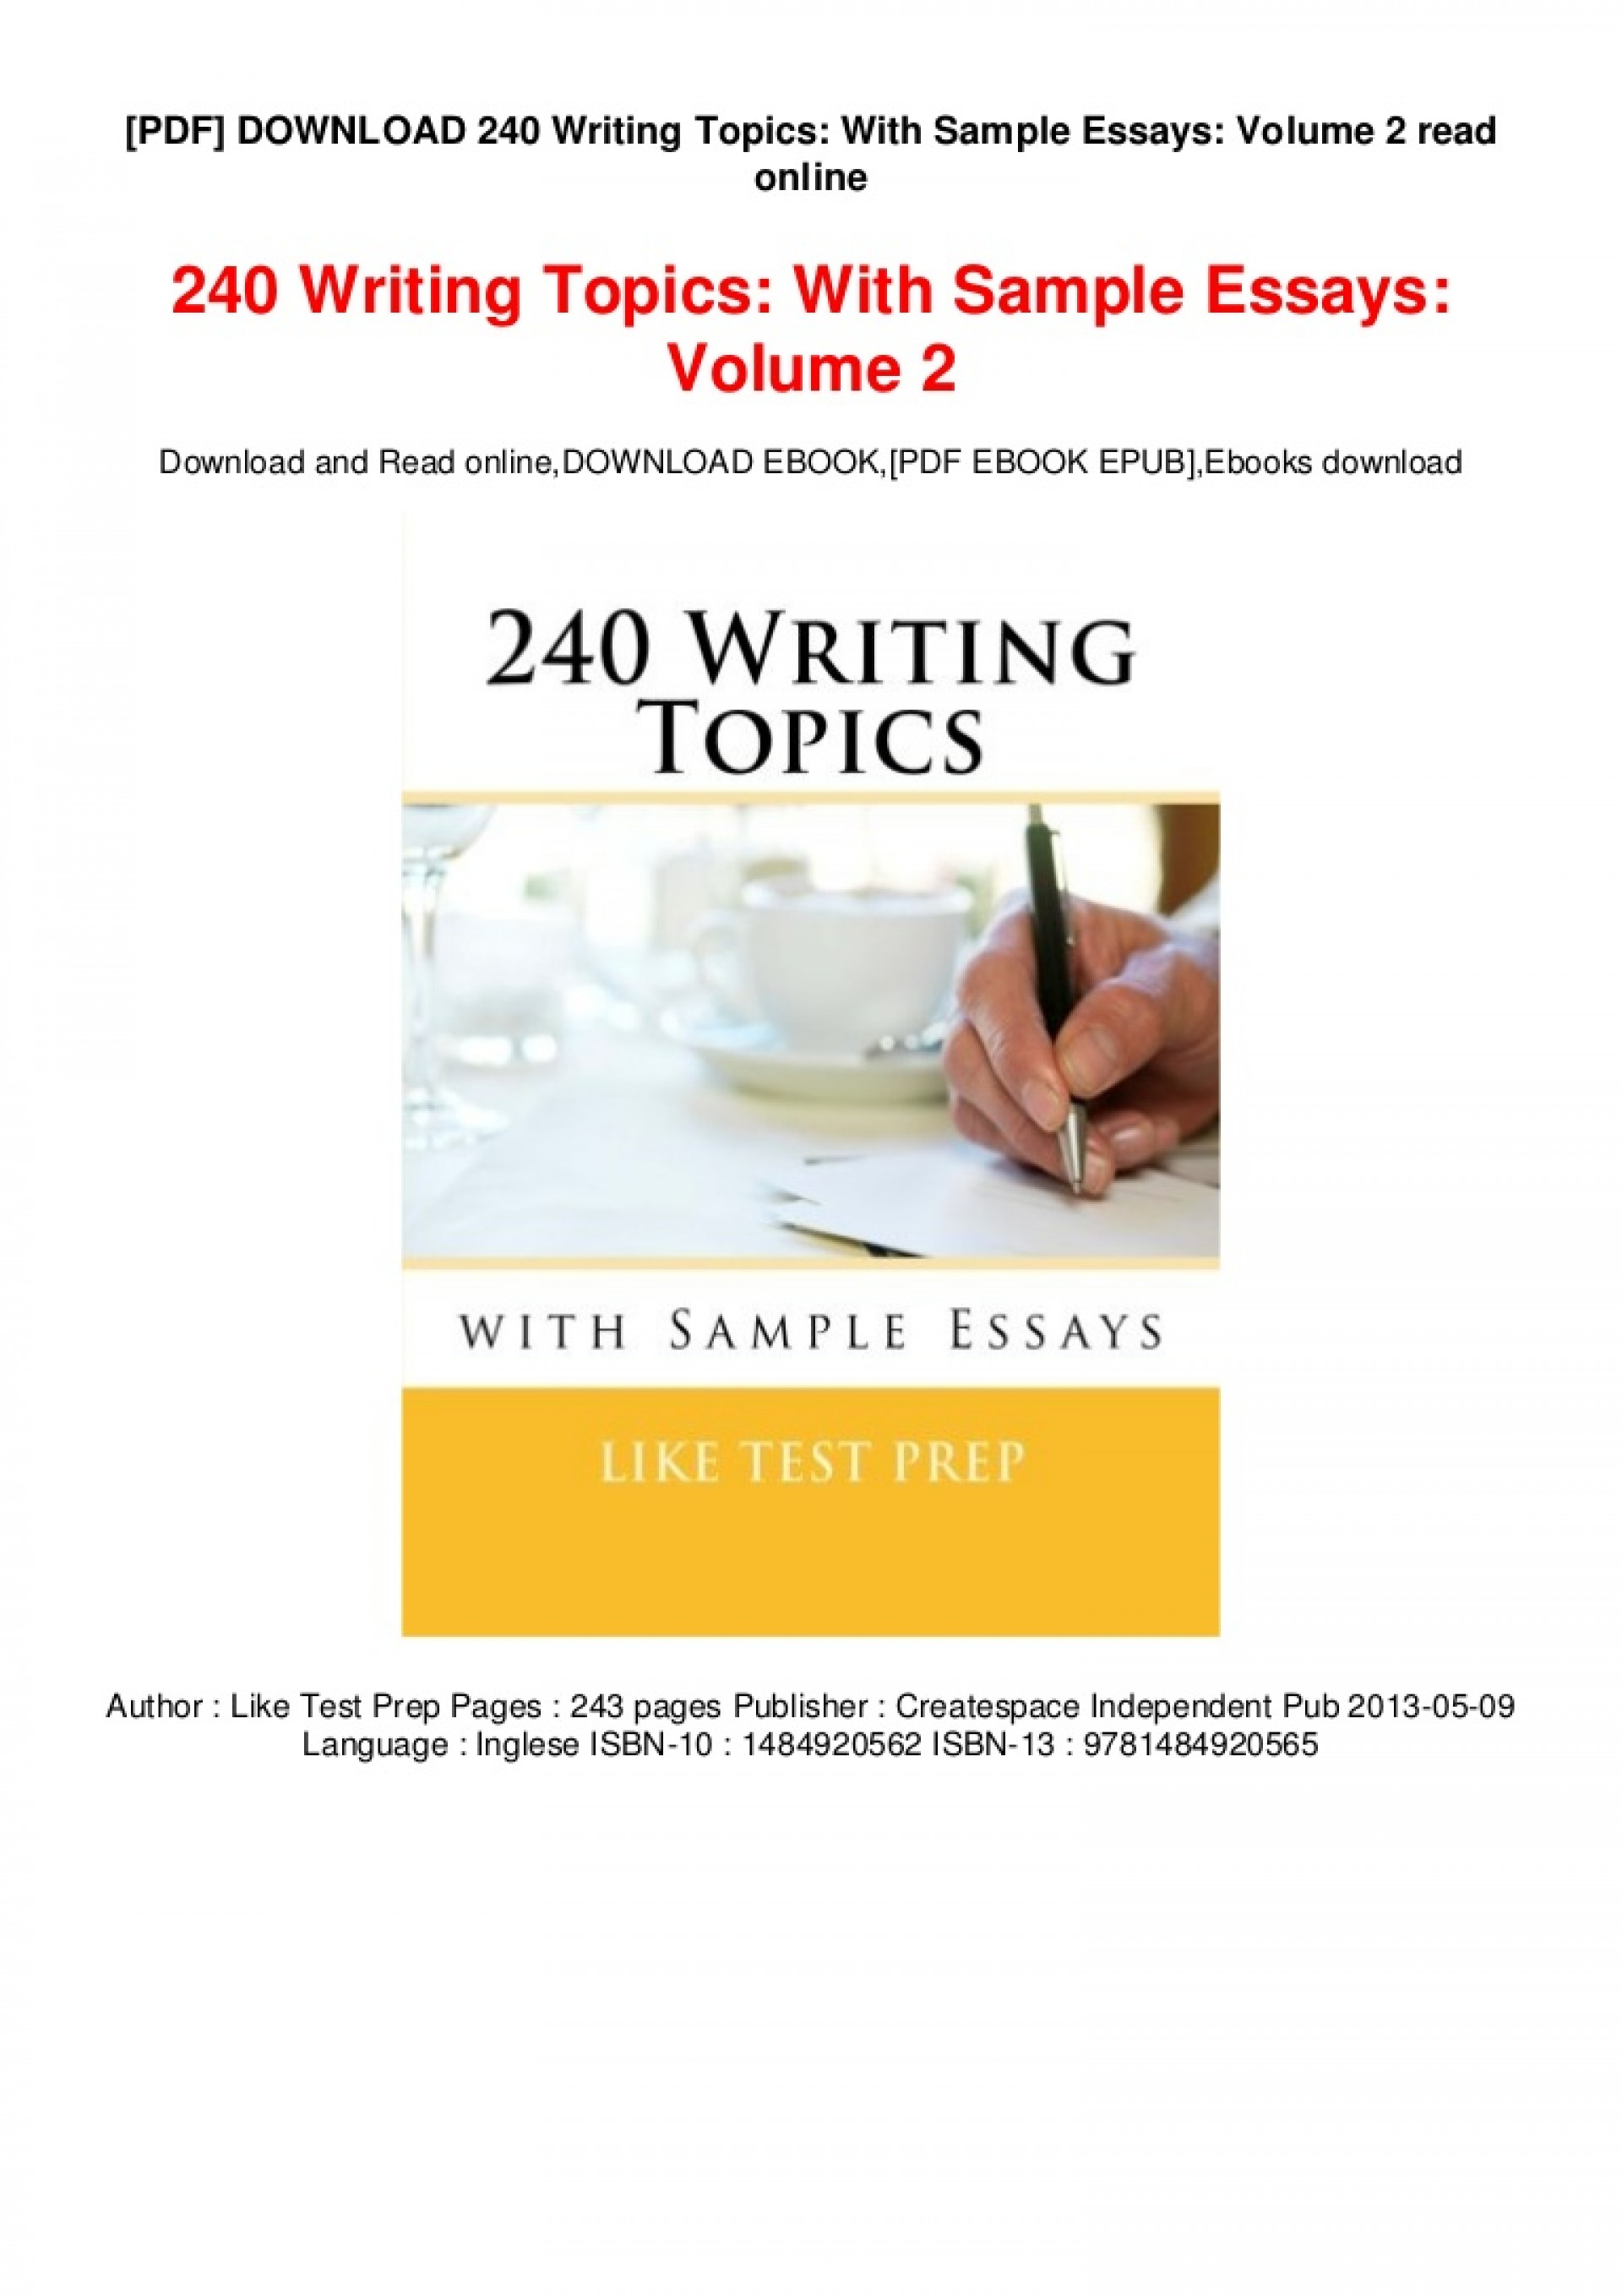 024 Essays Online To Read Pdf Download Writing Topics With Sample Volume Thumbnail Essay Remarkable Short Best 1920